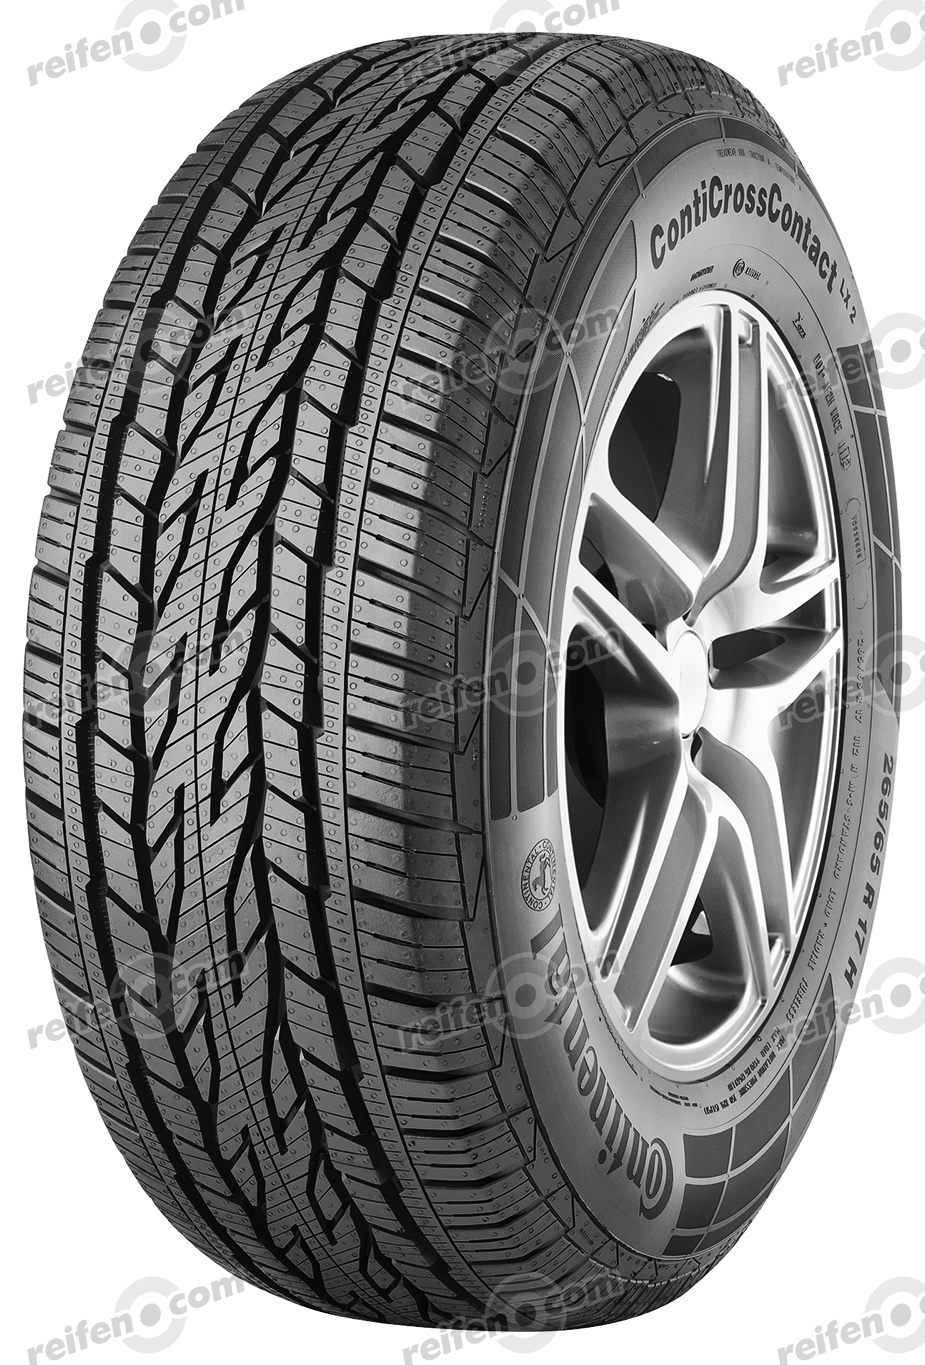 235/75 R15 109T CrossContact  LX 2 XL FR BSW  CrossContact  LX 2 XL FR BSW